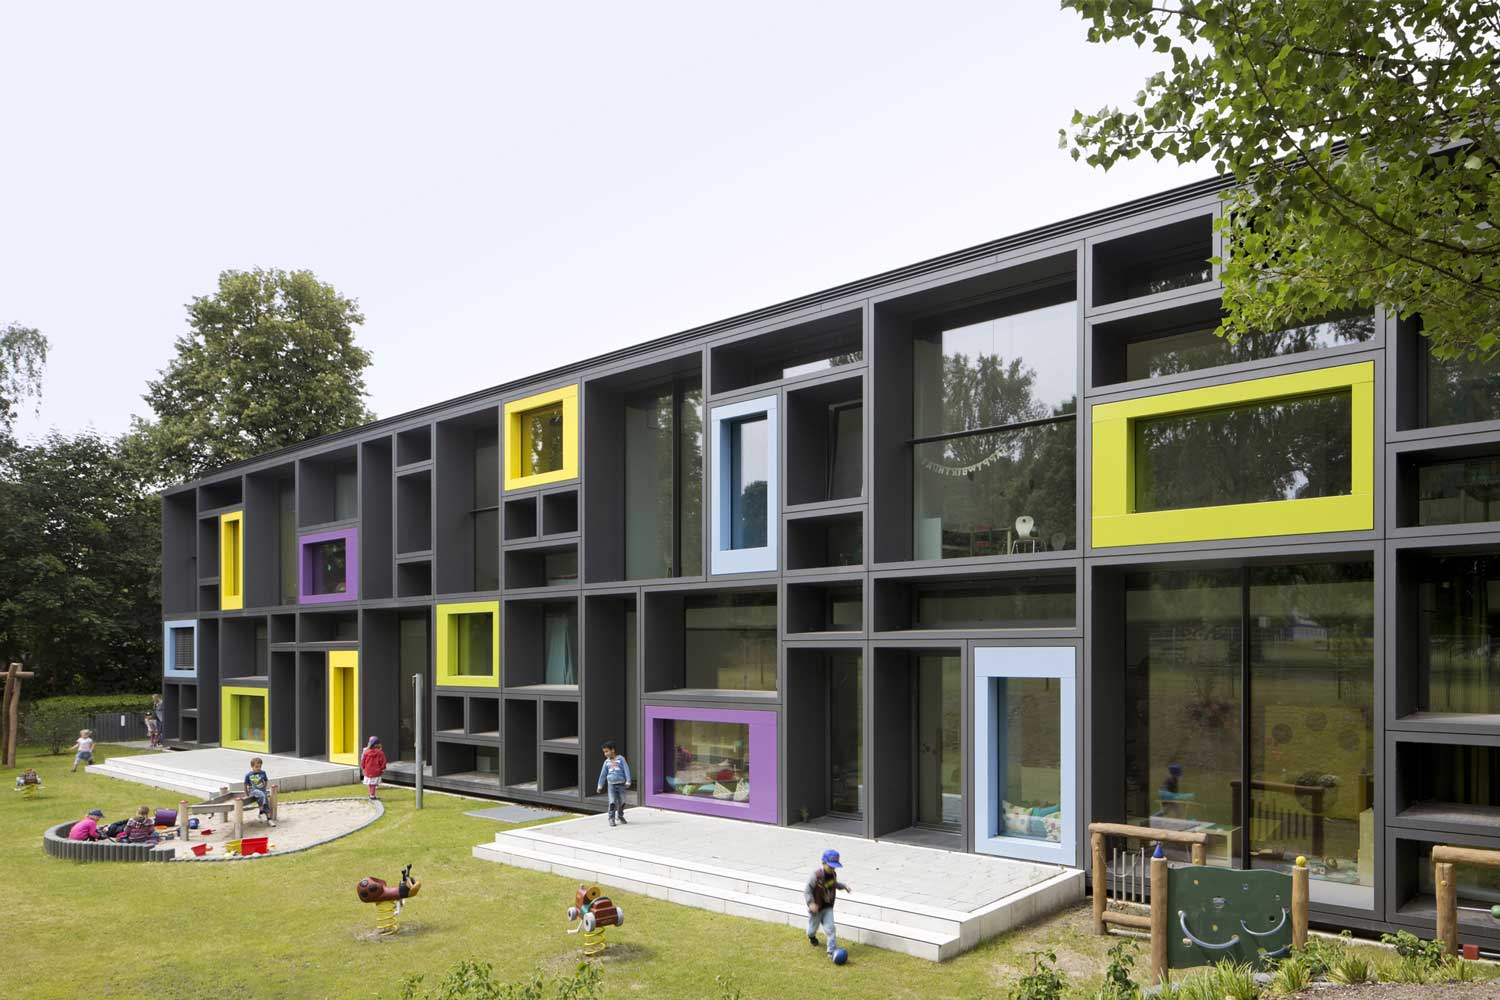 Beiersdorf Childrens Day Care Centre by Kadawittfeldarchitektur Yellowtrace 03